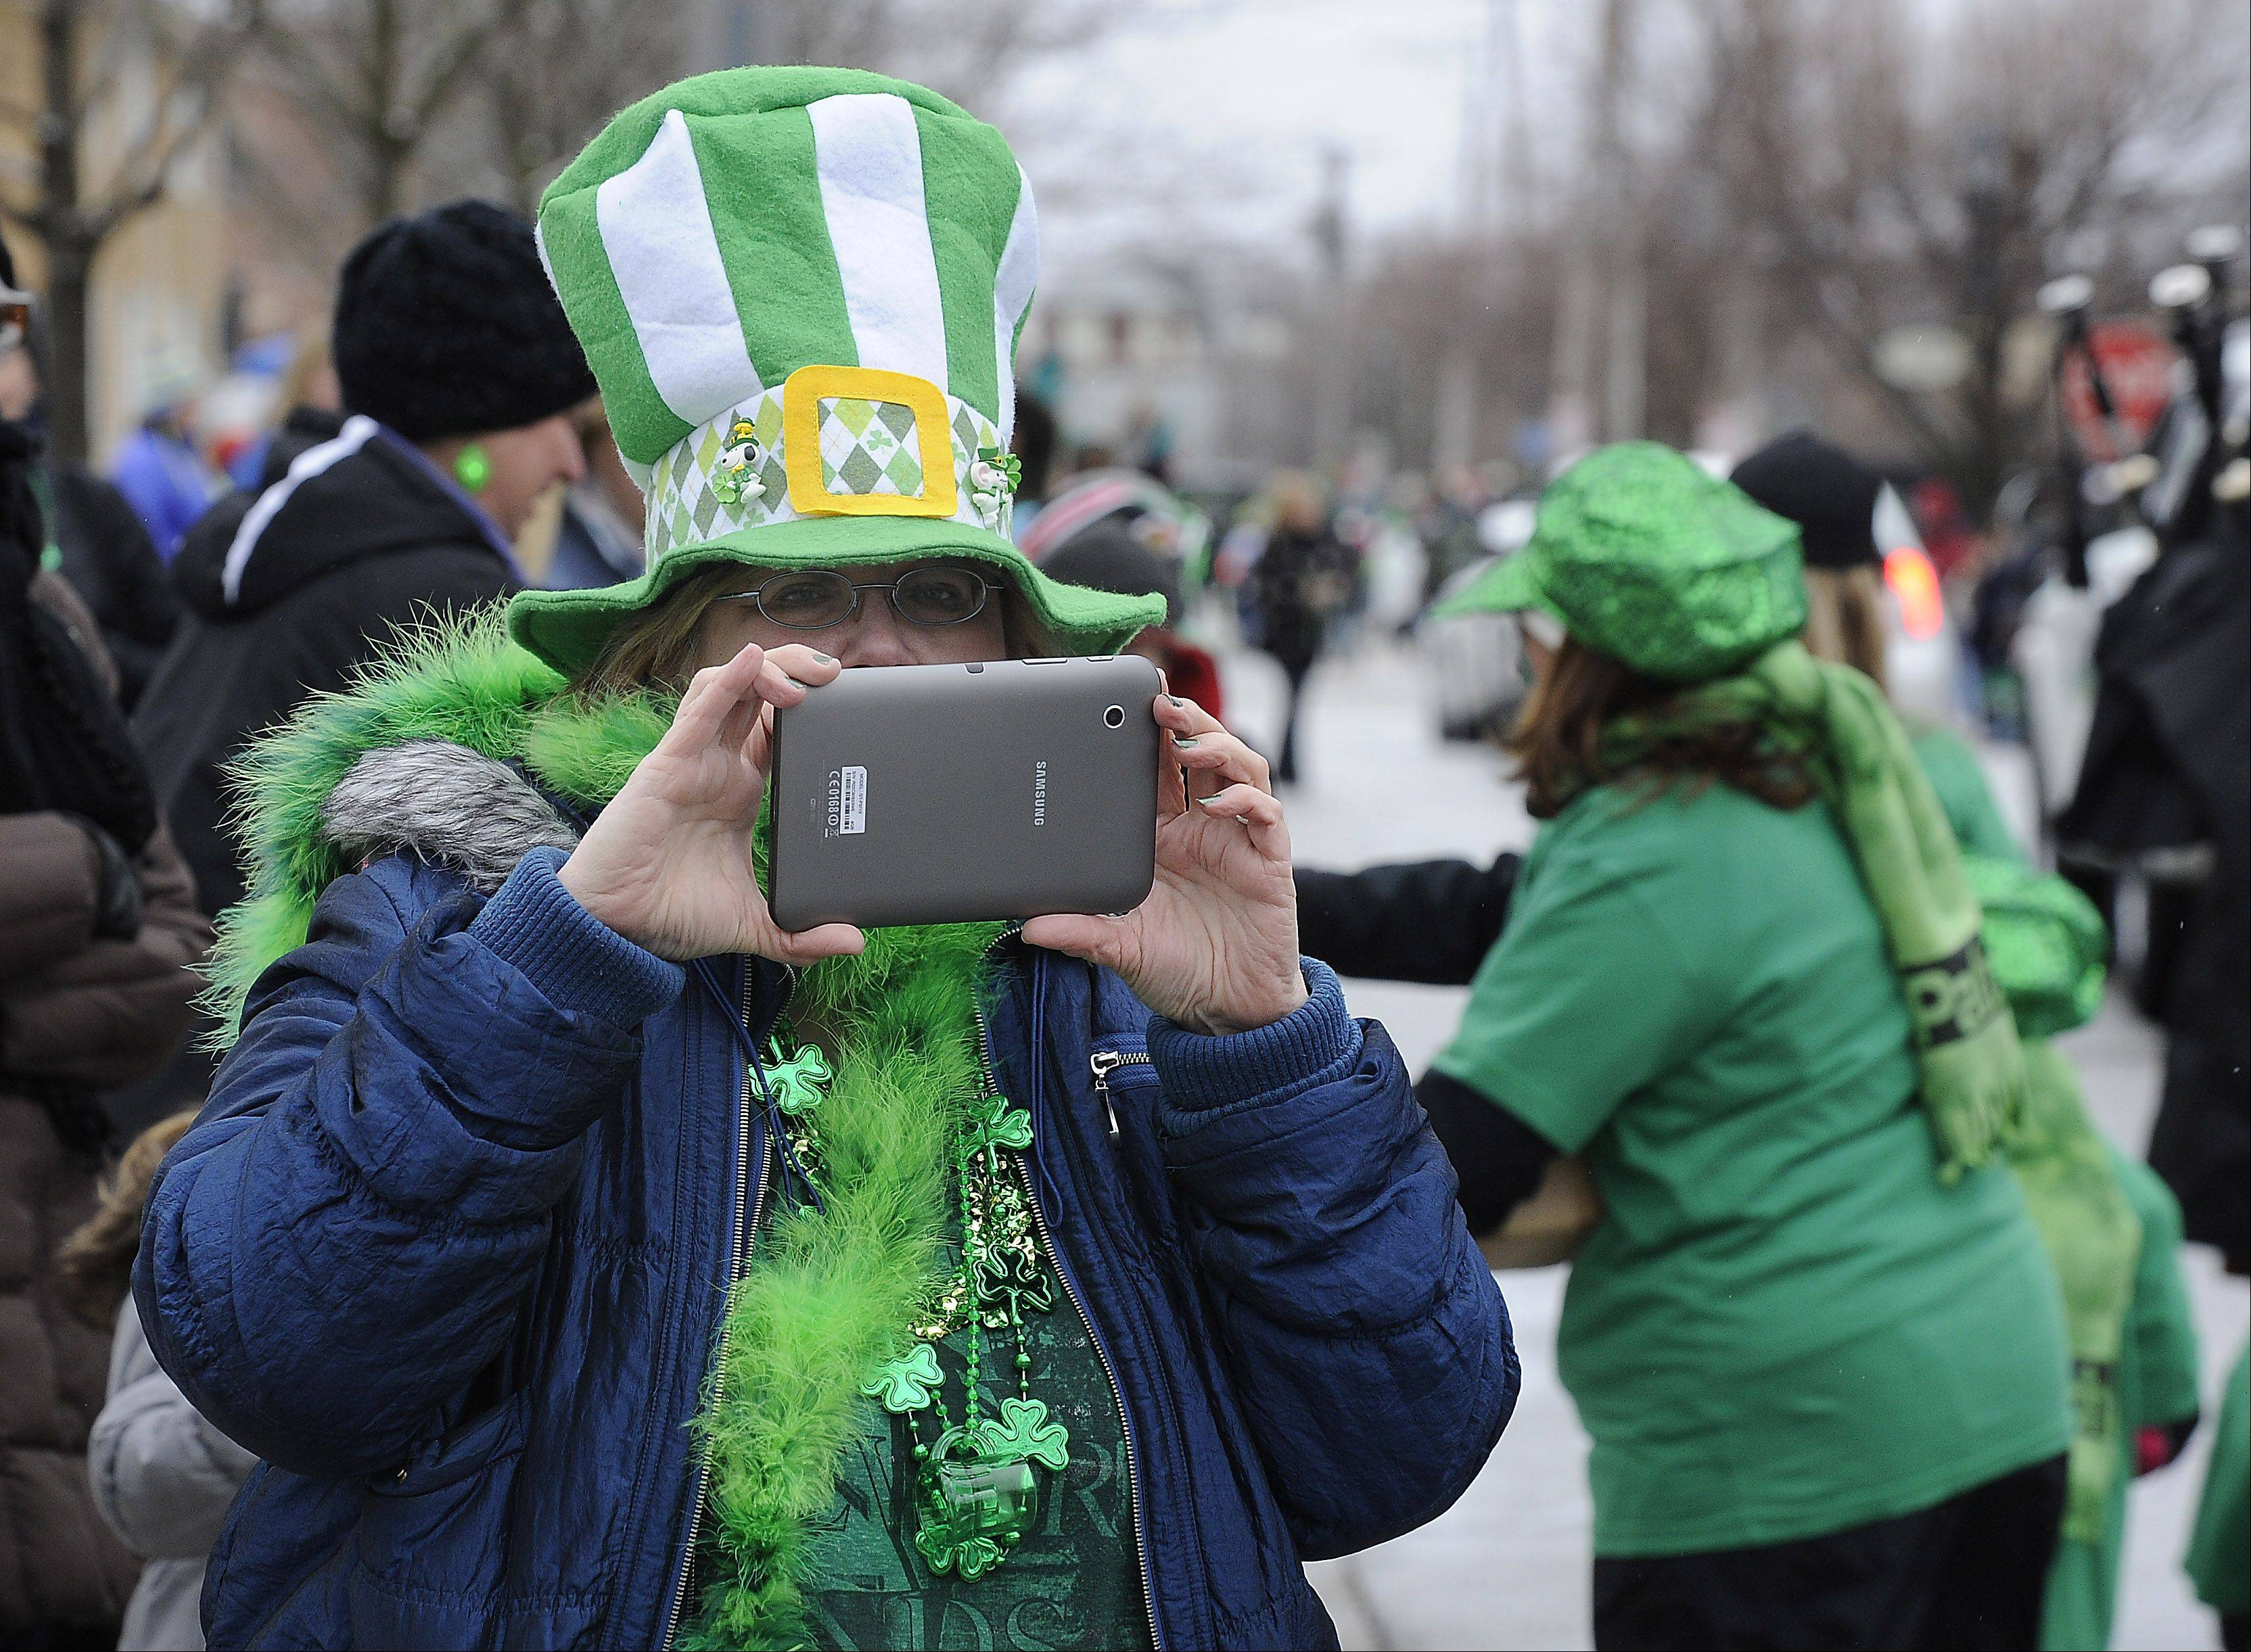 Despite the cold and the snow showers Saturday, Vivian Garcia of Poplar Grove captures the moment at the St. Patrick's Day parade in Palatine.